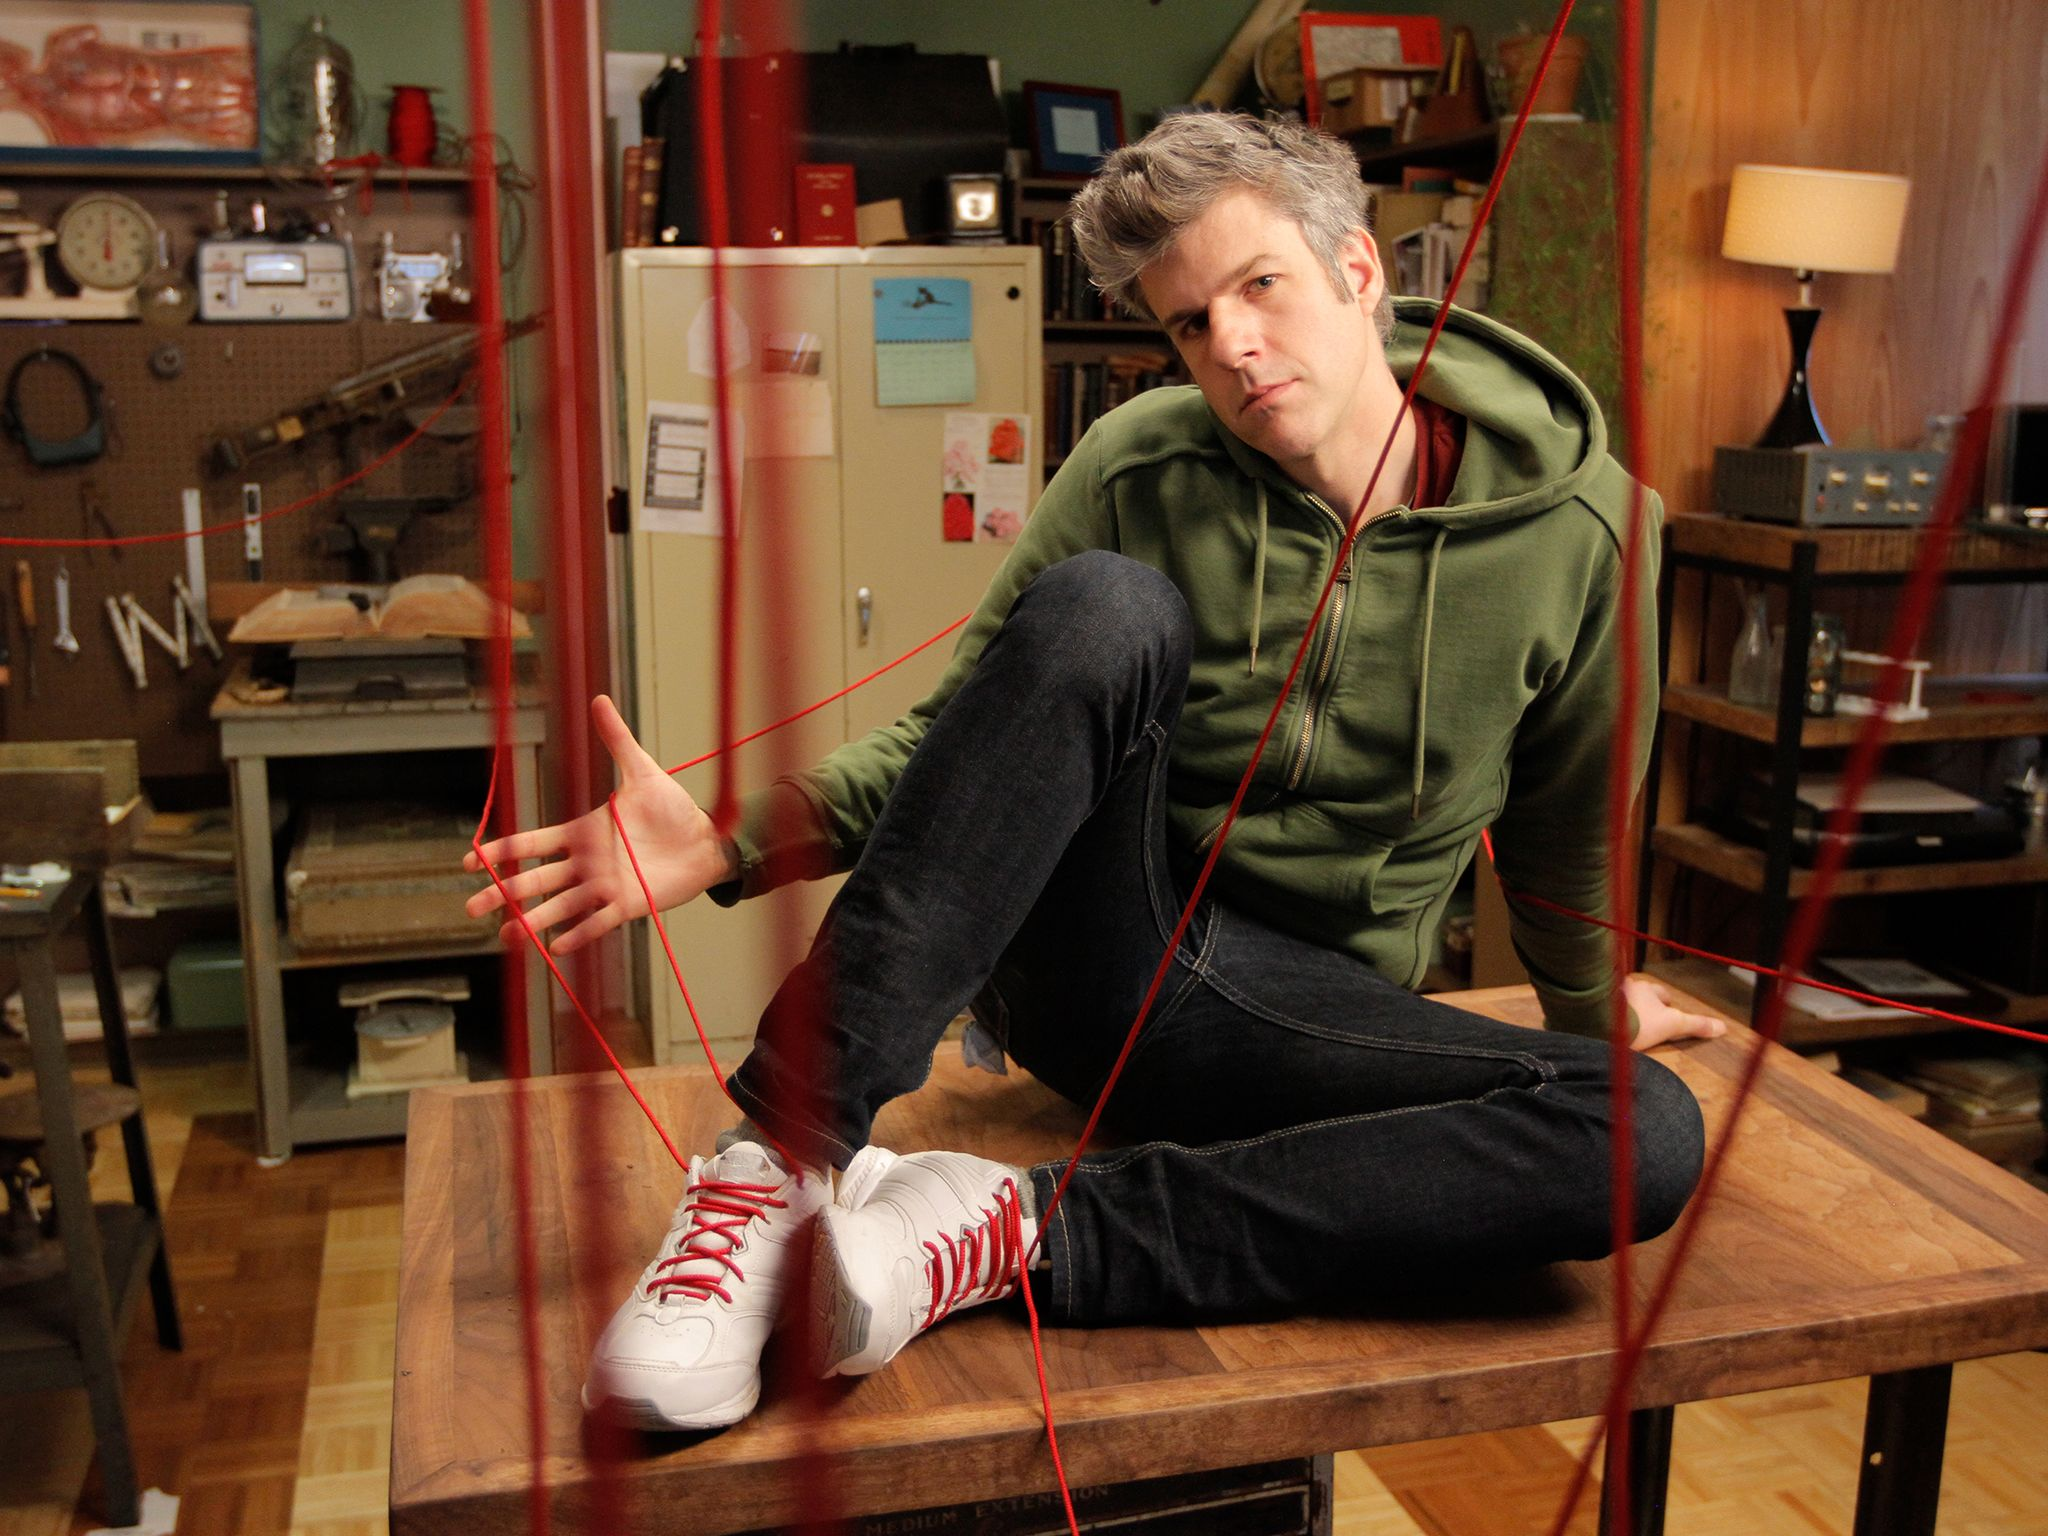 Beacon, NY: David Rees poses on top of his workbench with 50-foot laces strewn about his workshop... [Photo of the day - oktober 2014]